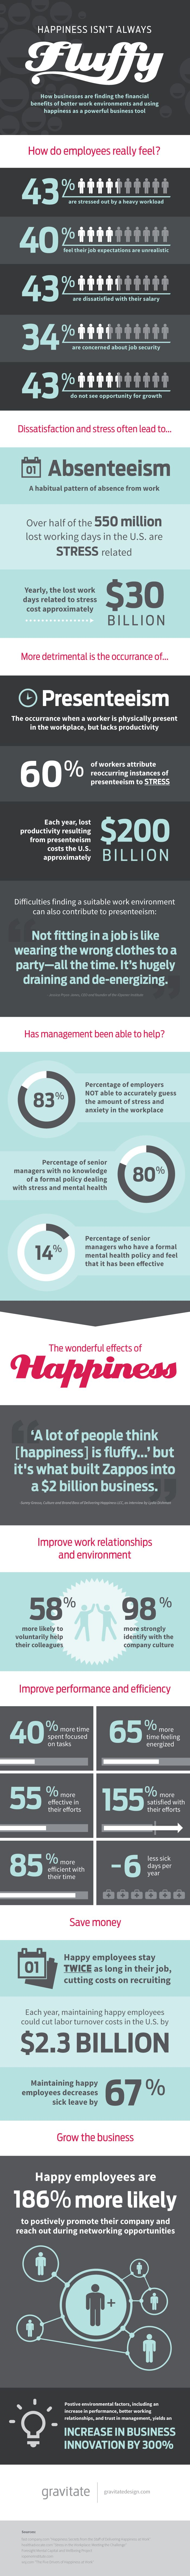 Why Your Boss Should Really Be Making You Happy Right Now. The way to actually save the company some money...